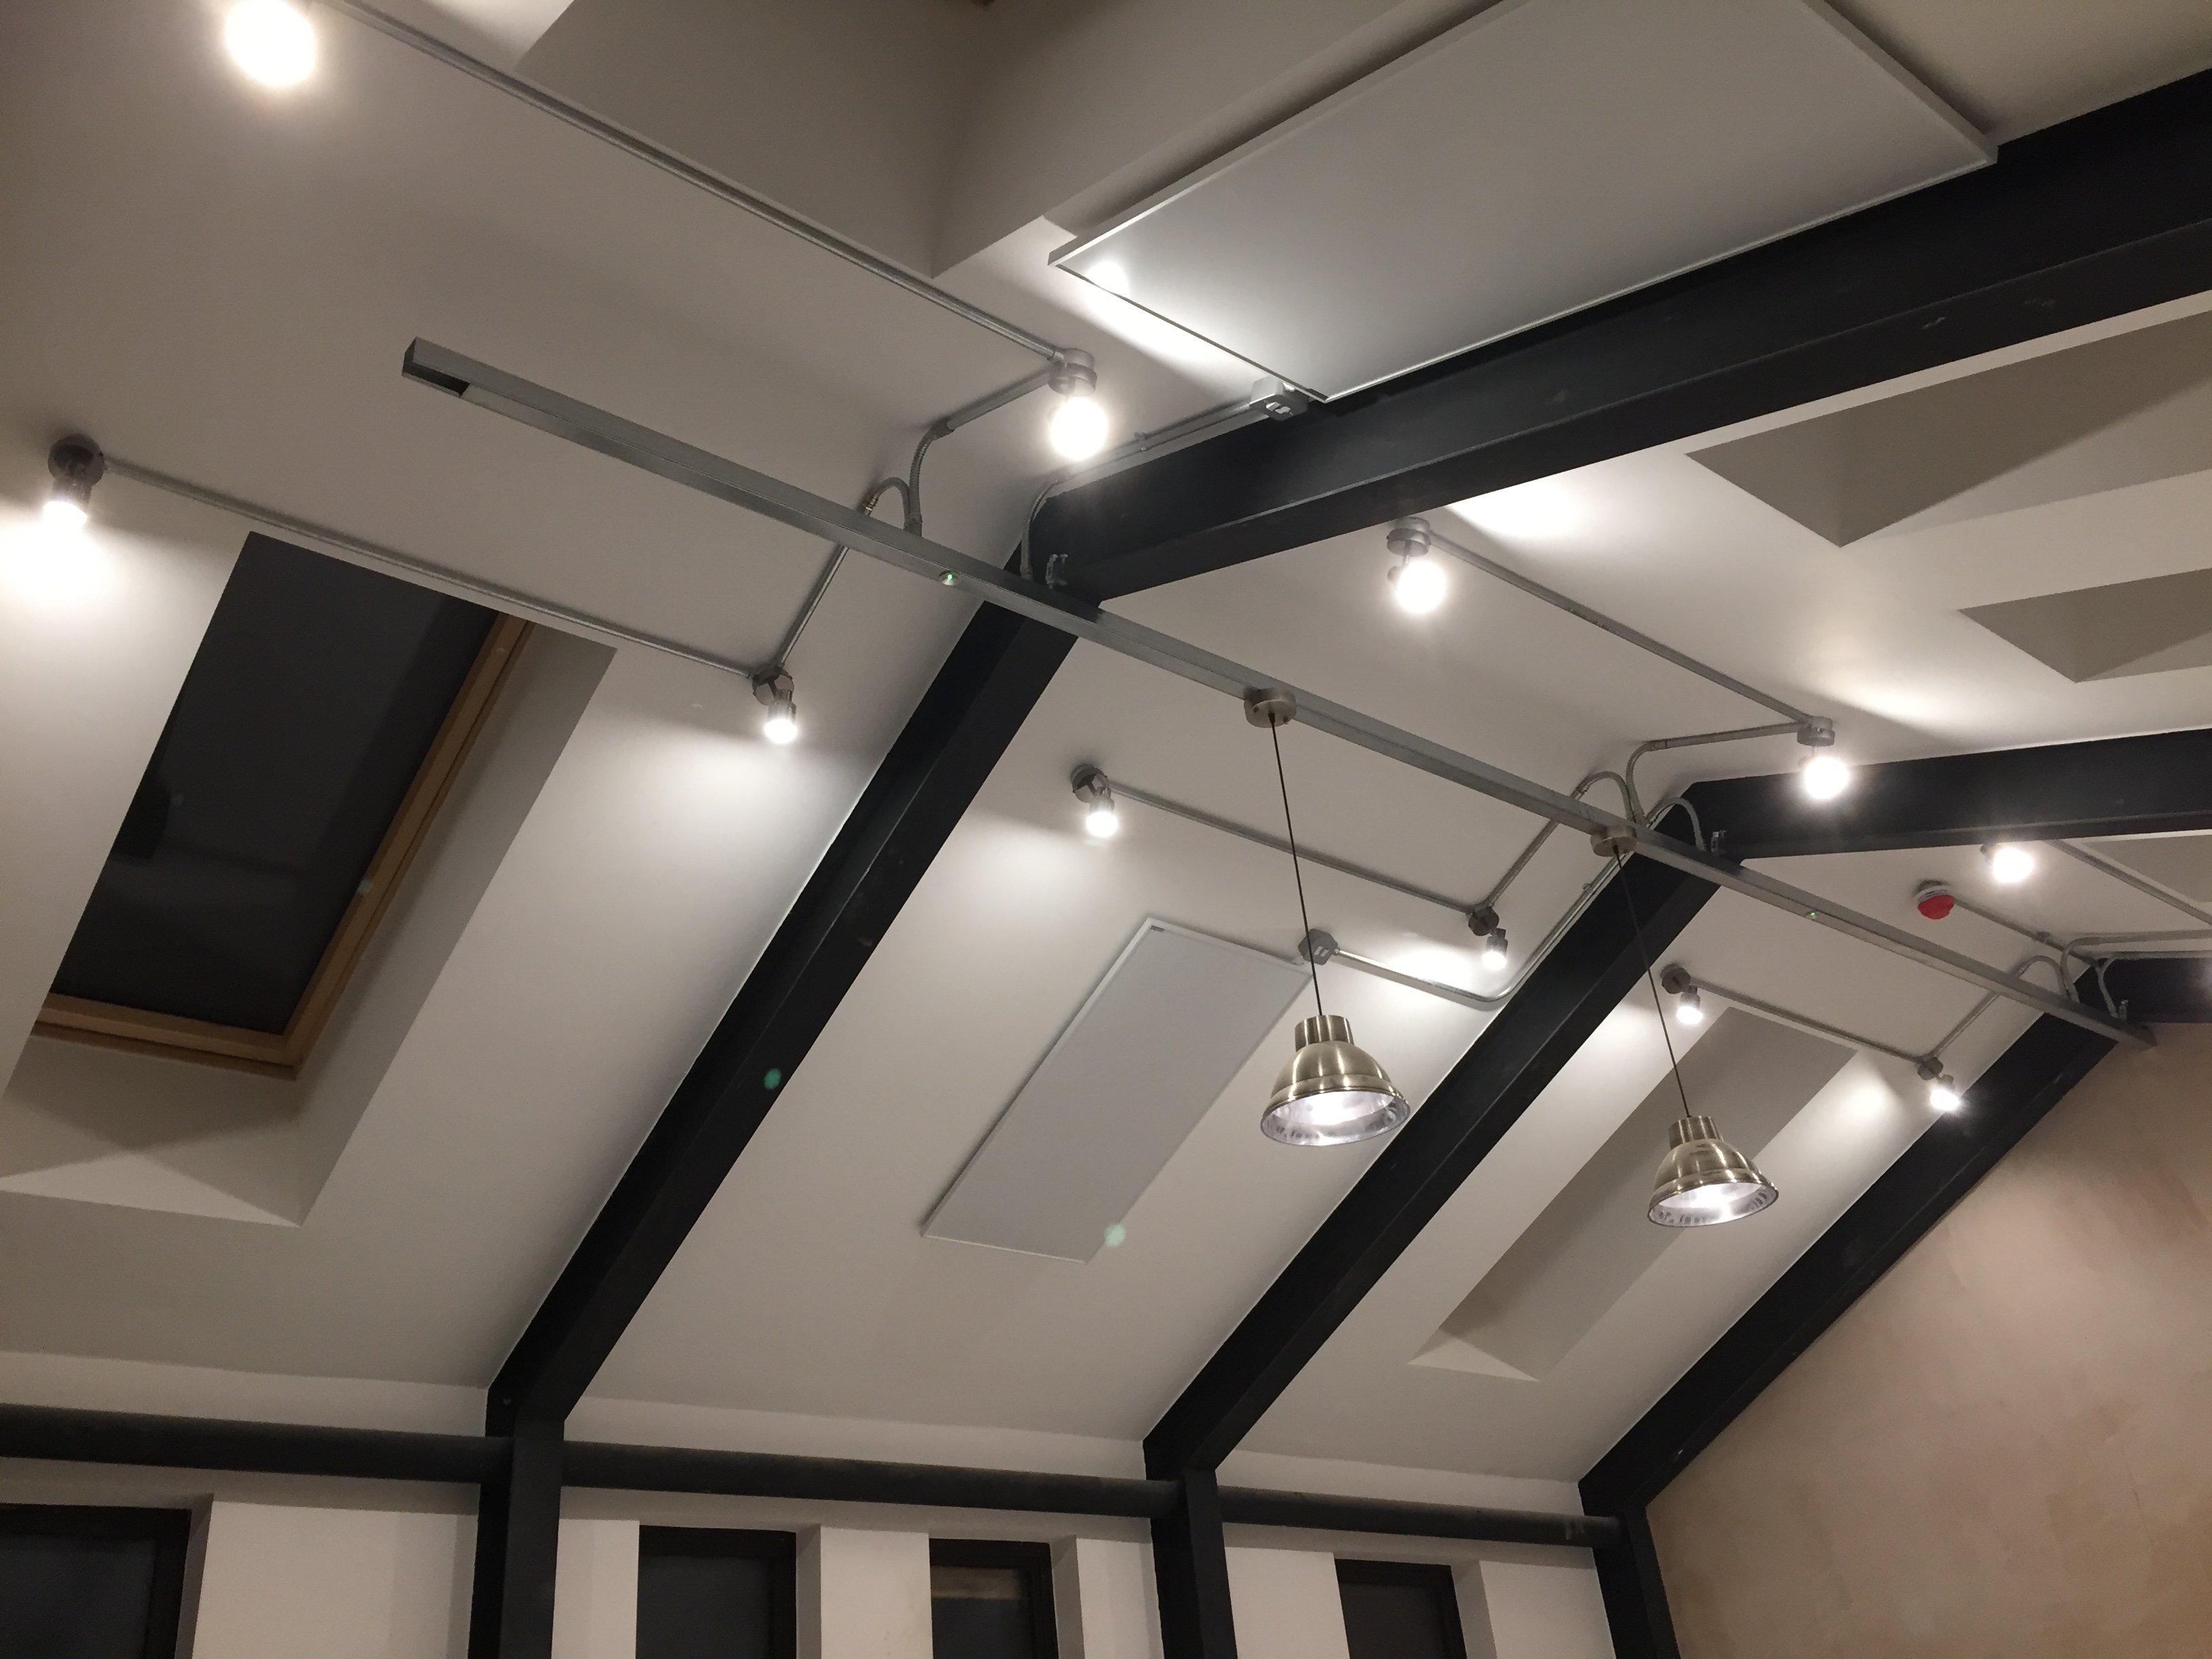 Office lighting installed by South East Electricians Hackney London